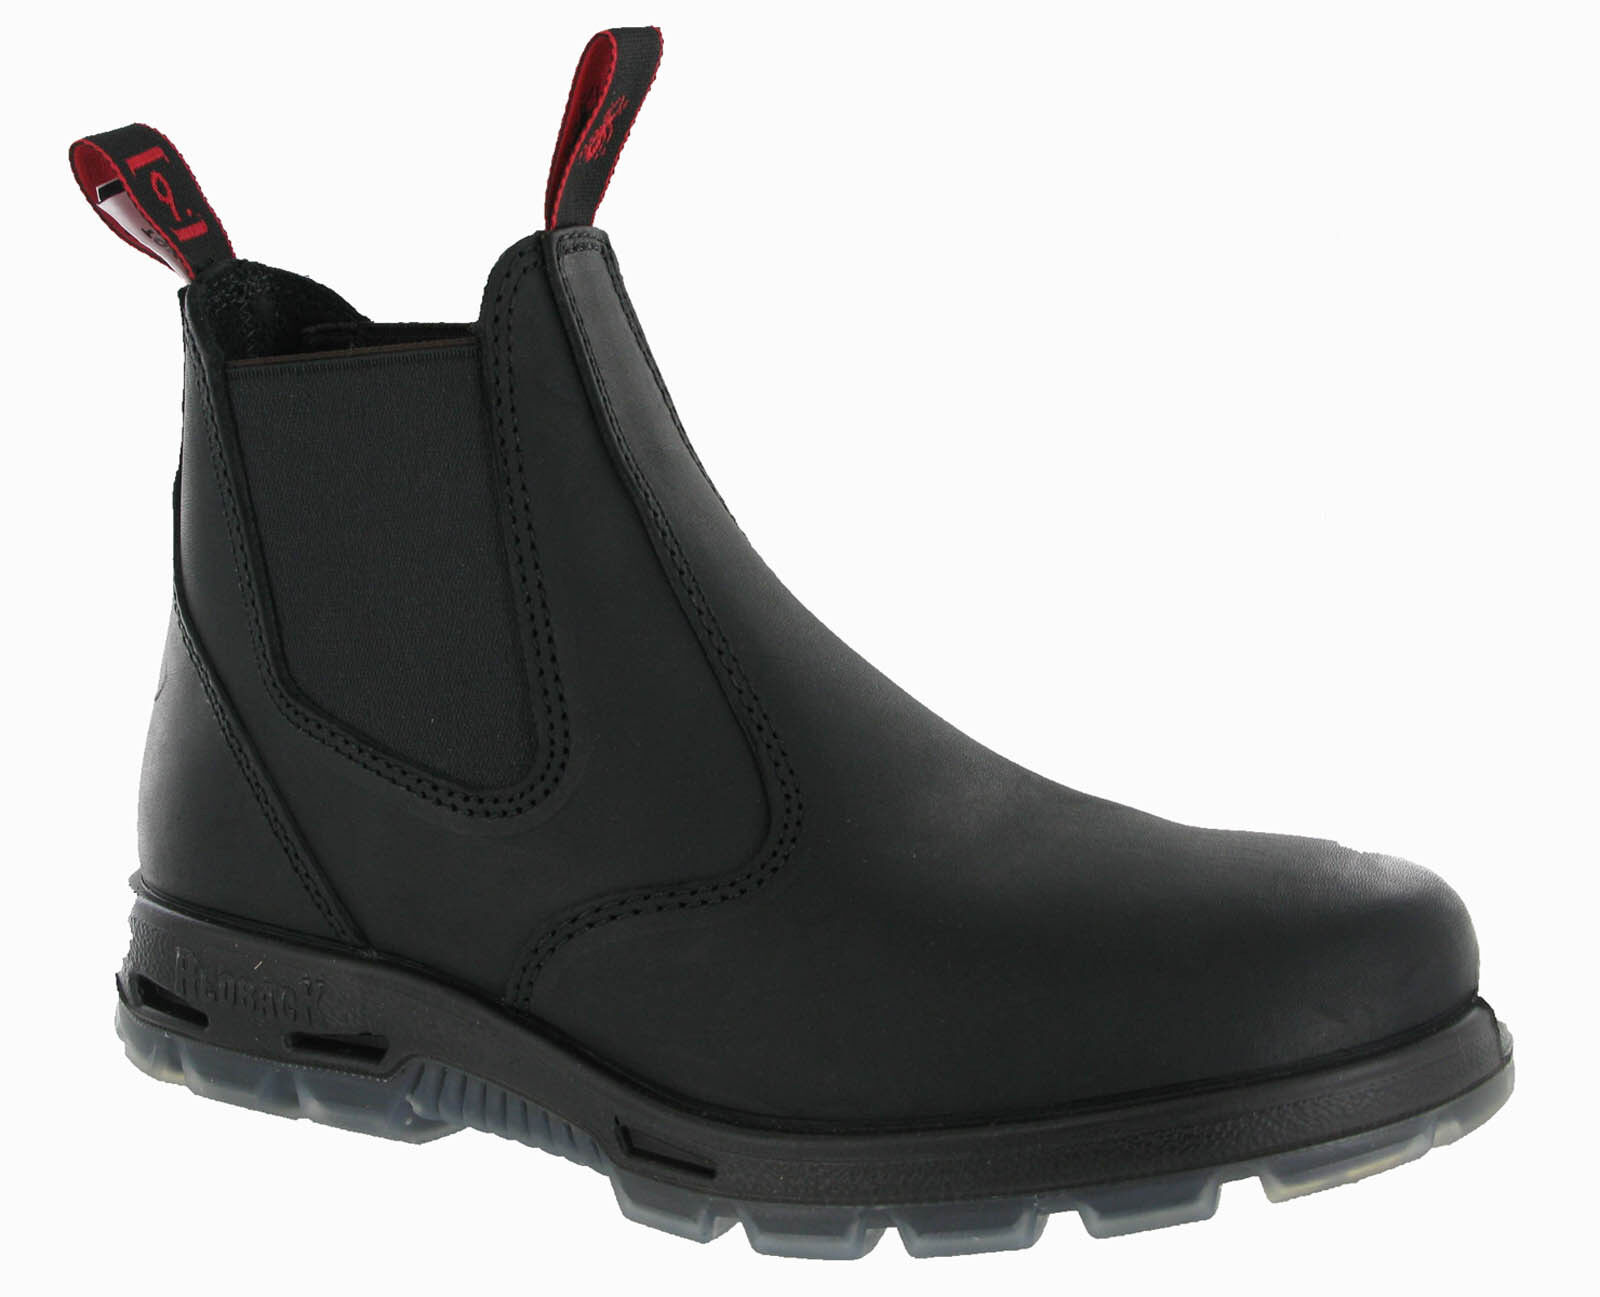 Redback Leather Chelsea Dealer Non Boots Safety Dress Mens Work Boots Non UK6-12 211f9d